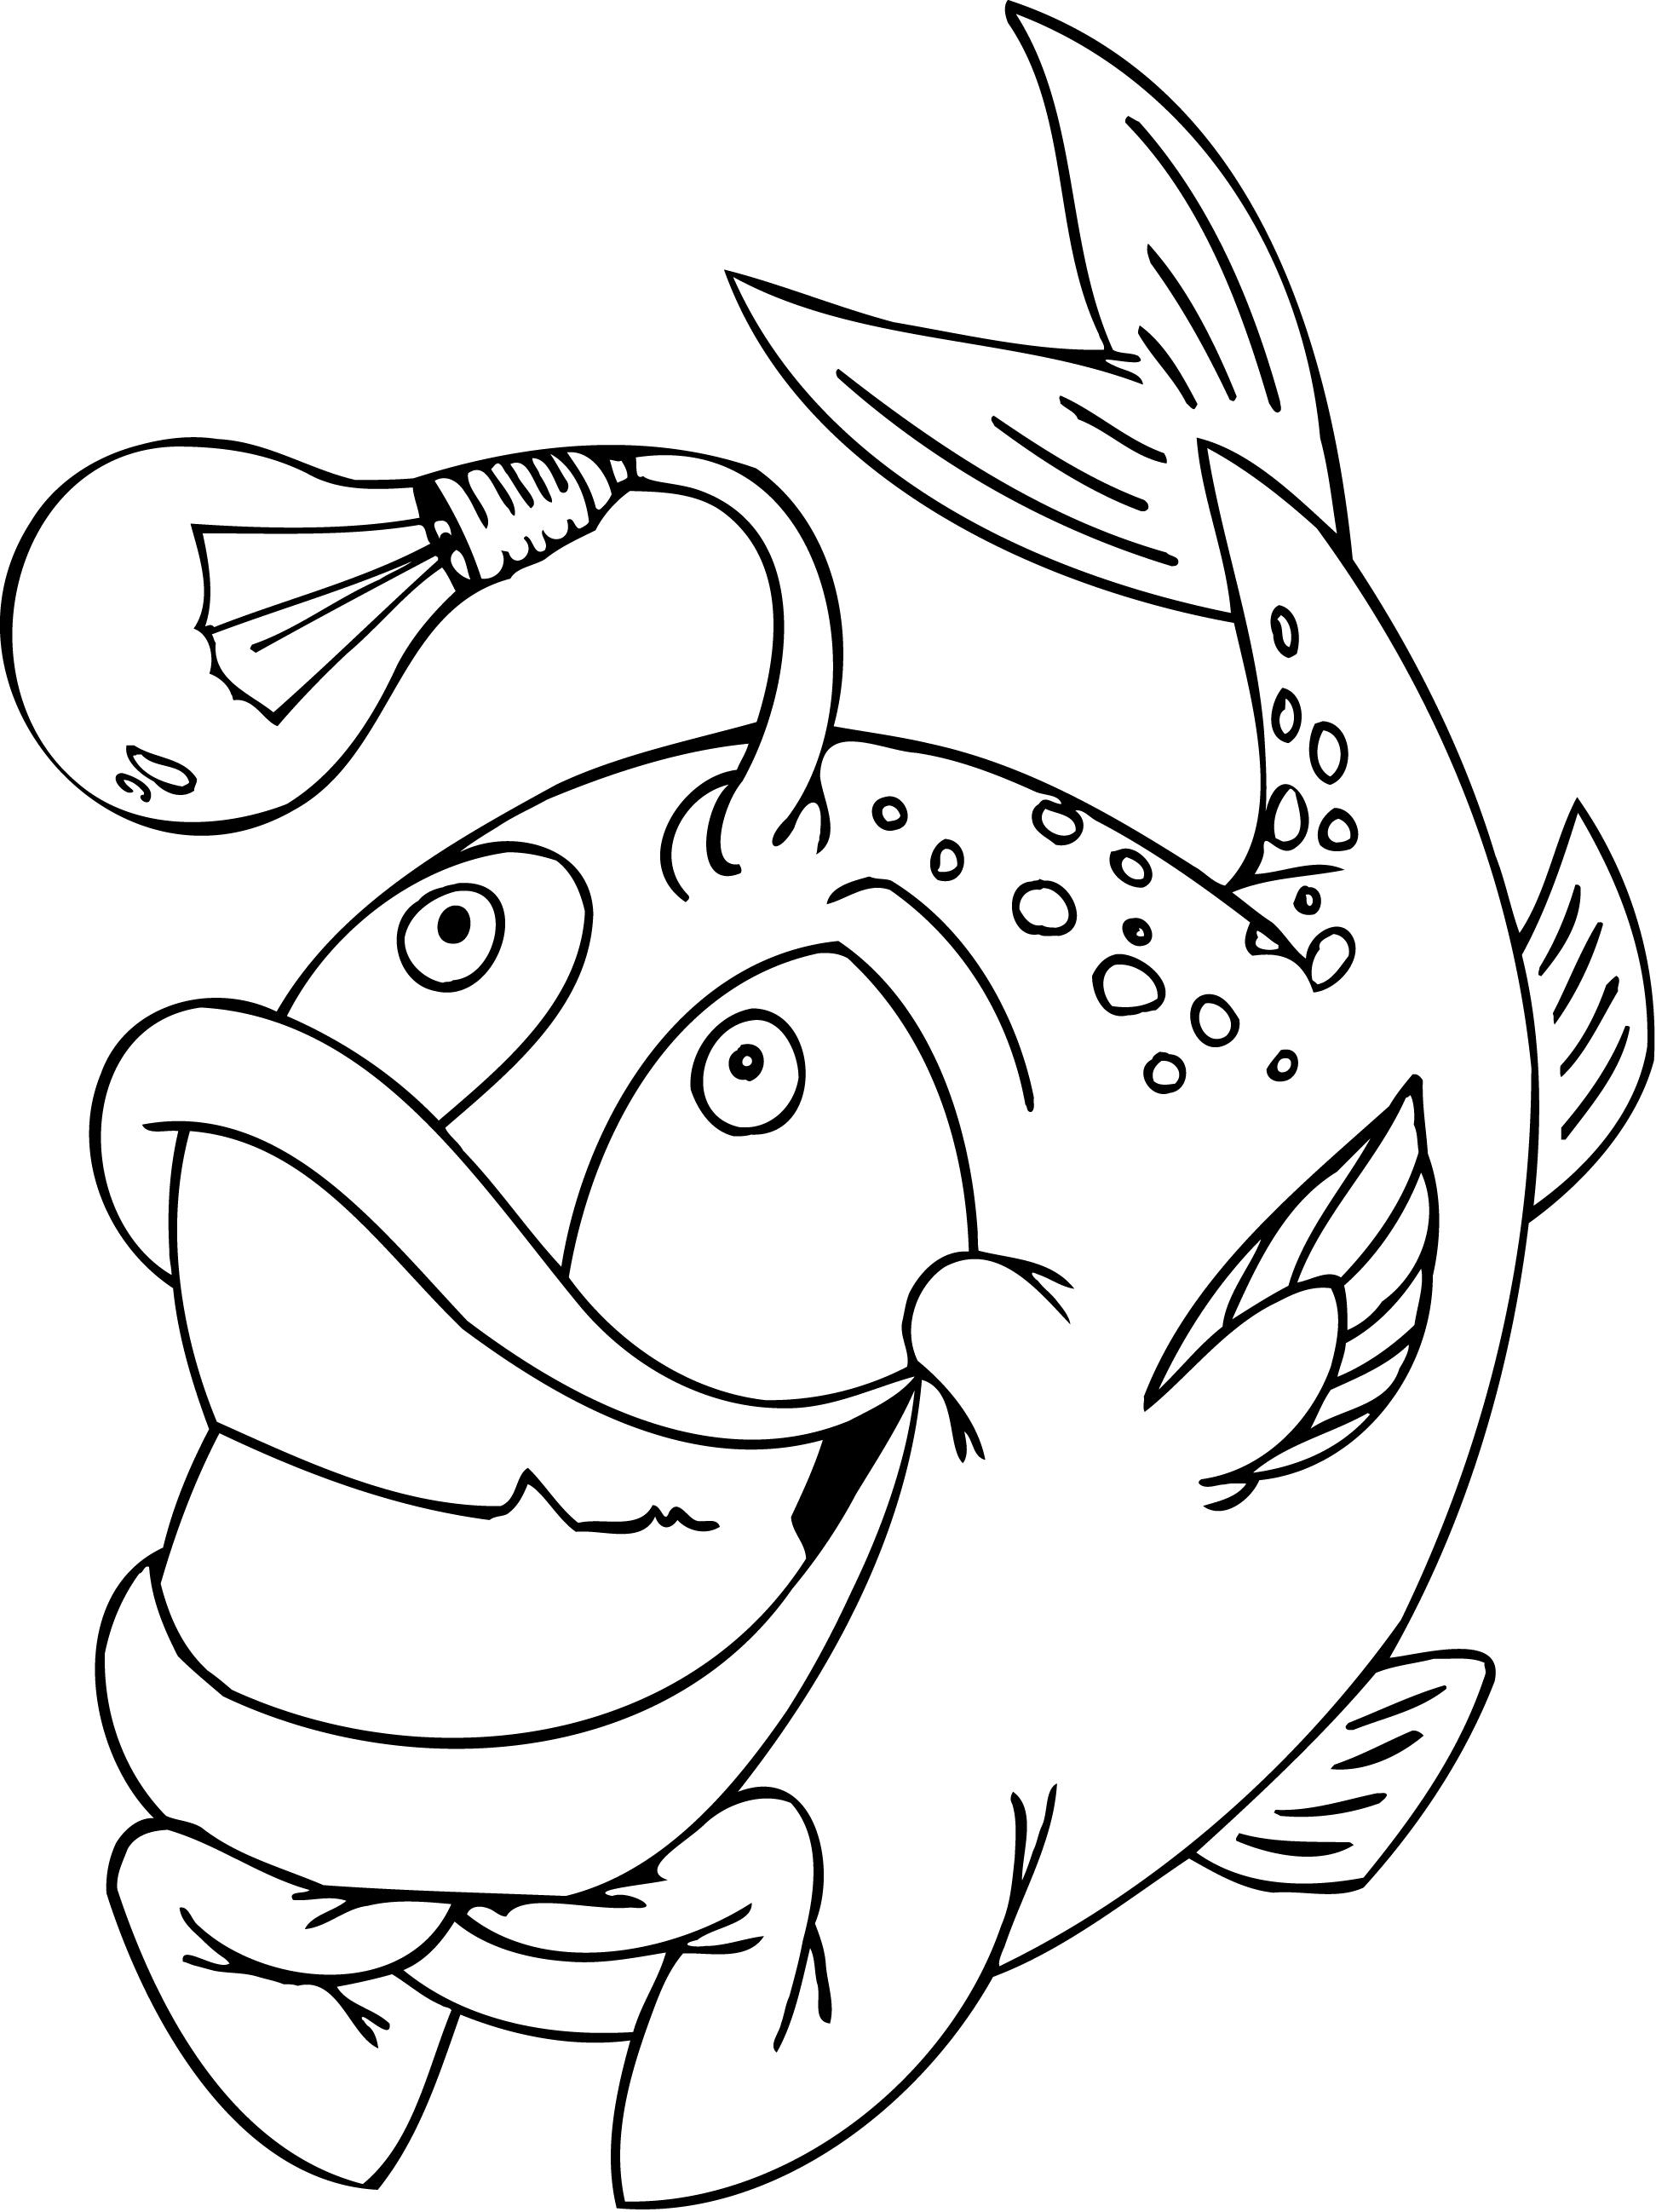 fun coloring pages to print out murderthestout